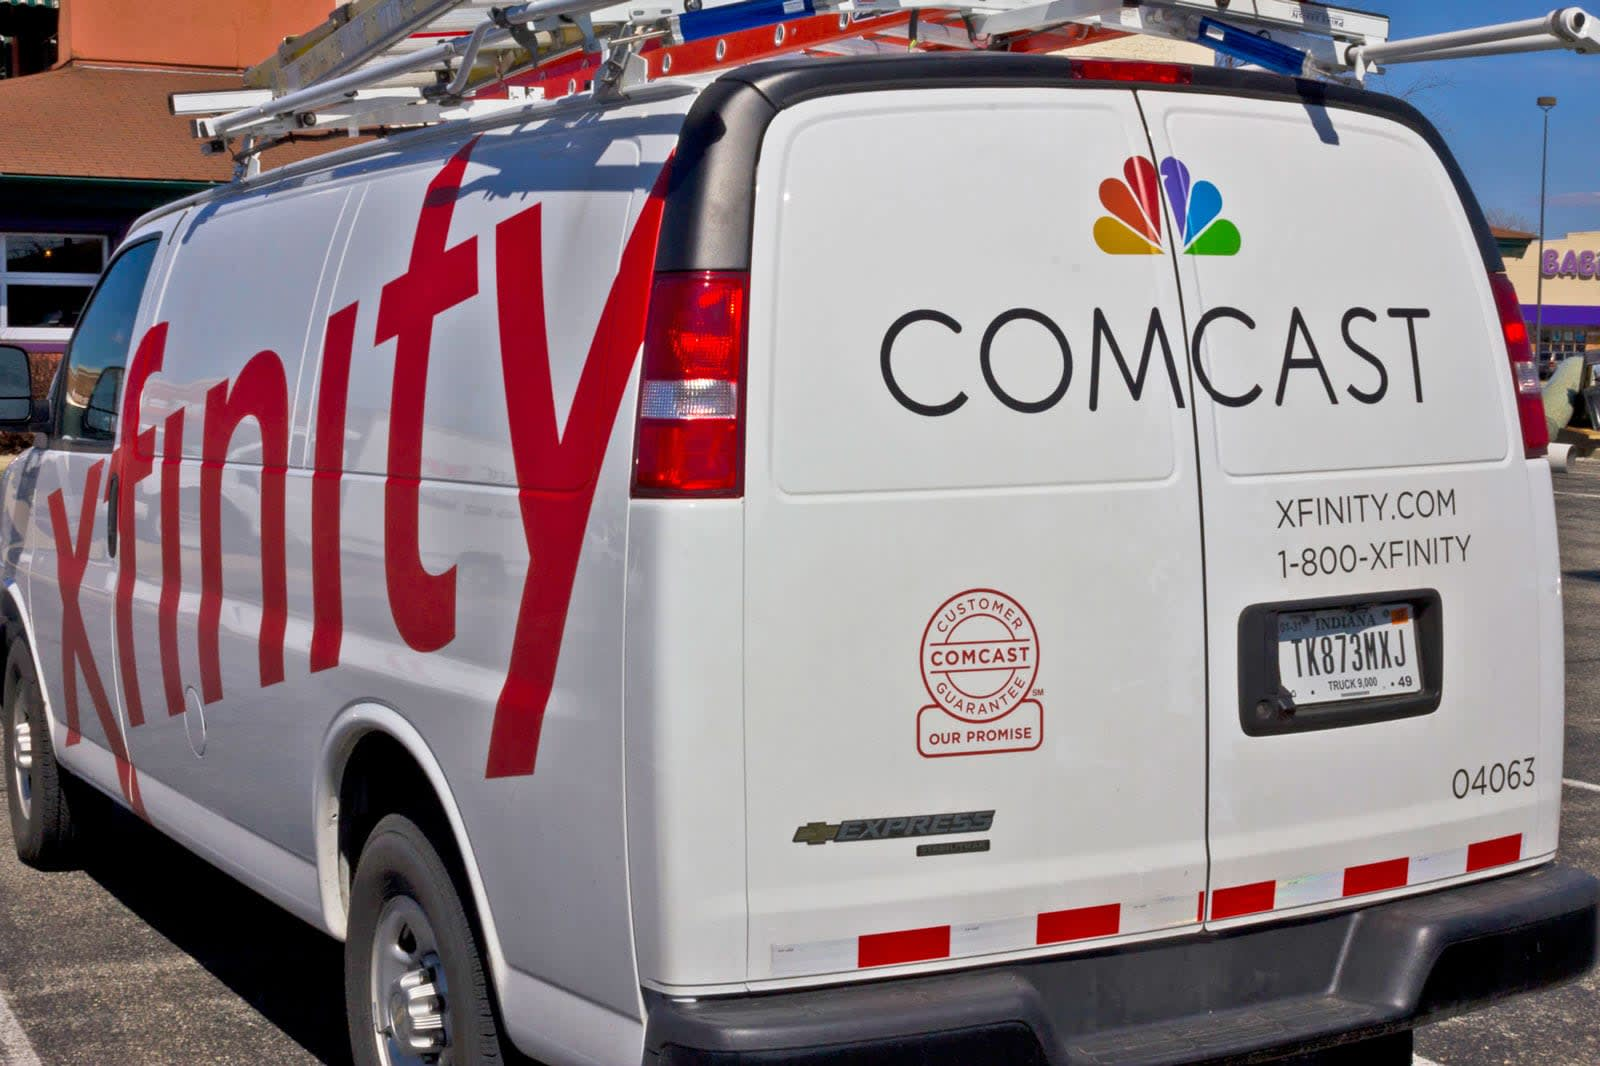 Xfinity is the first TV provider to connect to Disney's